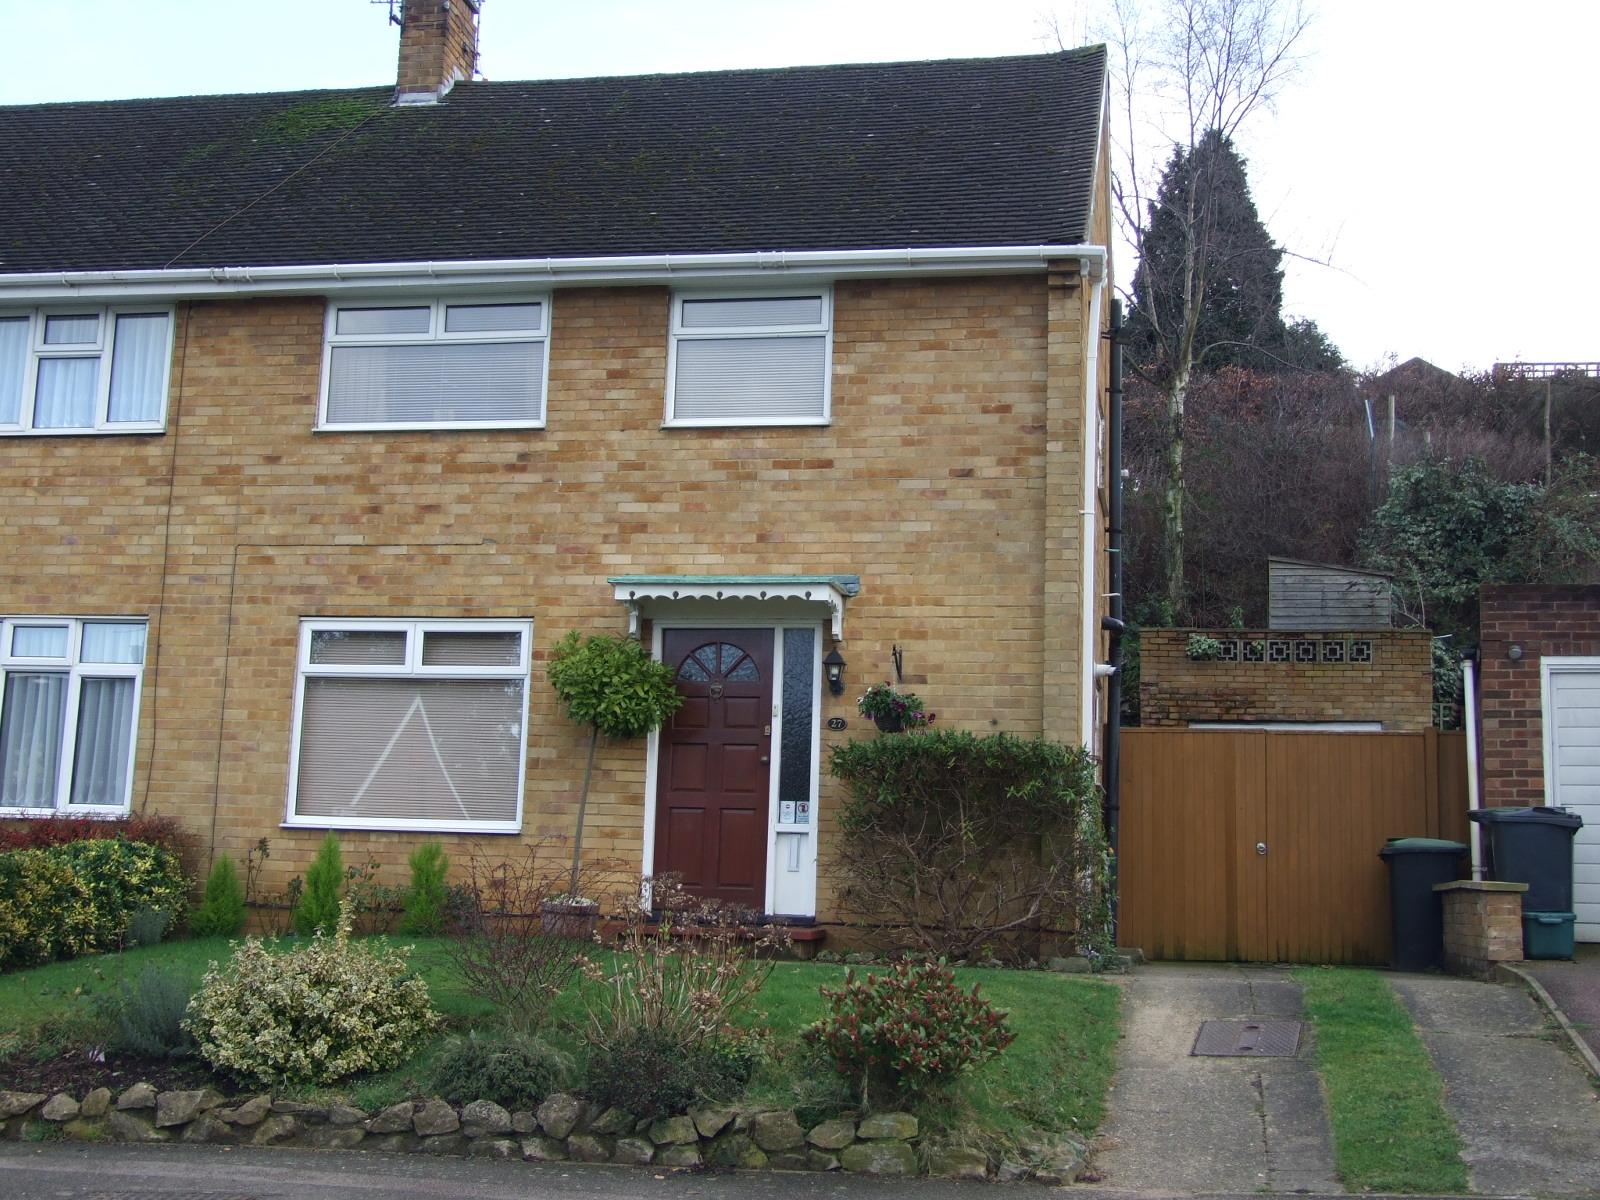 3 Bedroom Unfurnished House To Rent On Oak Drive, Aylesford, ME20 By Private  Landlord